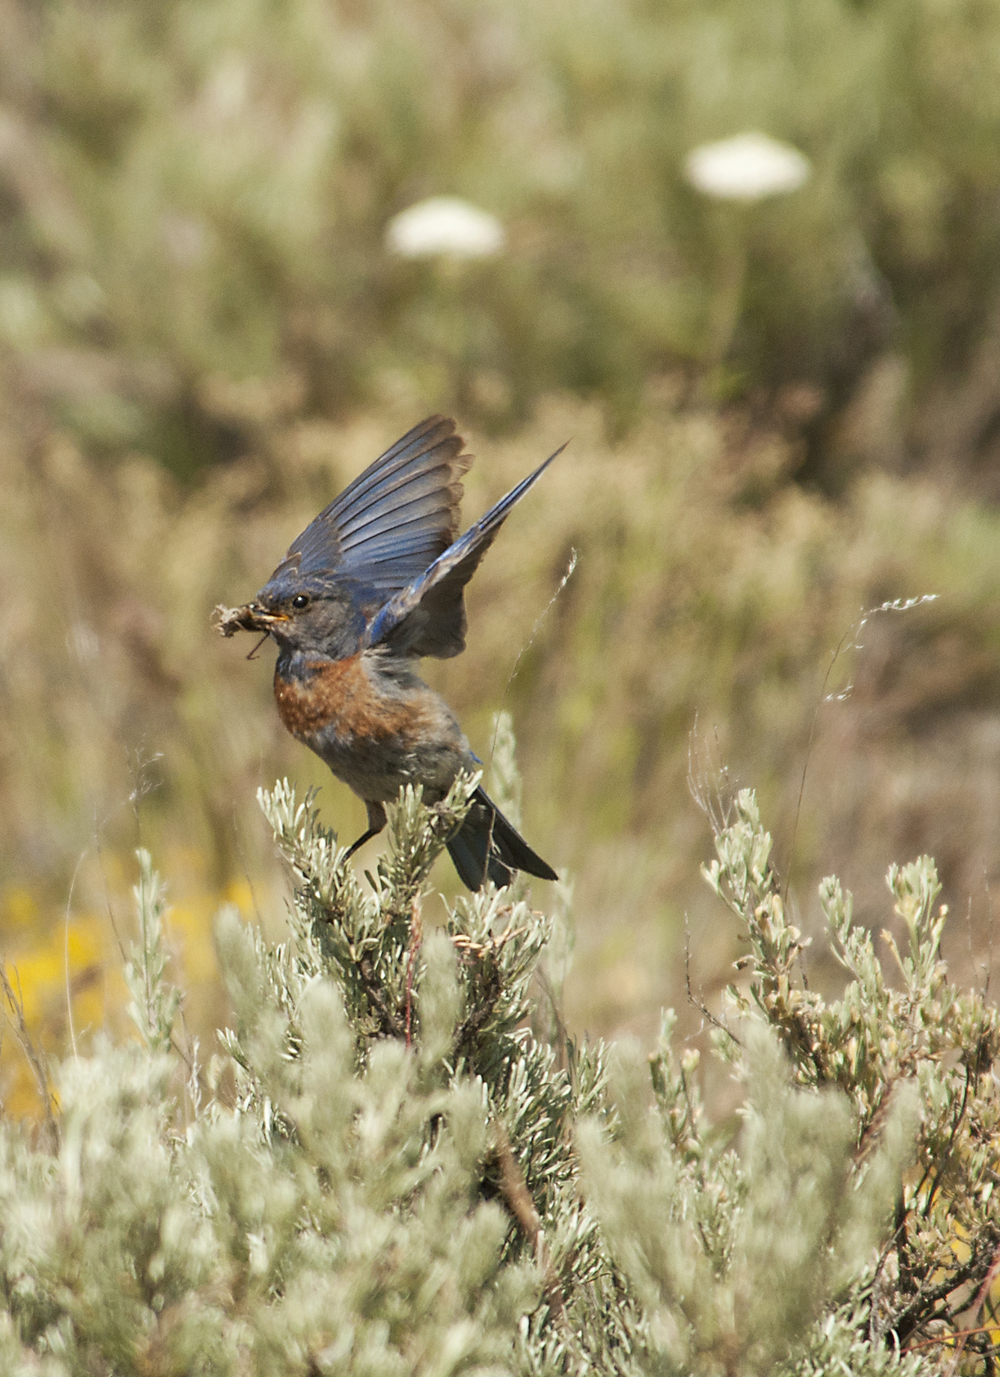 Male Western Bluebird Landing with Insect